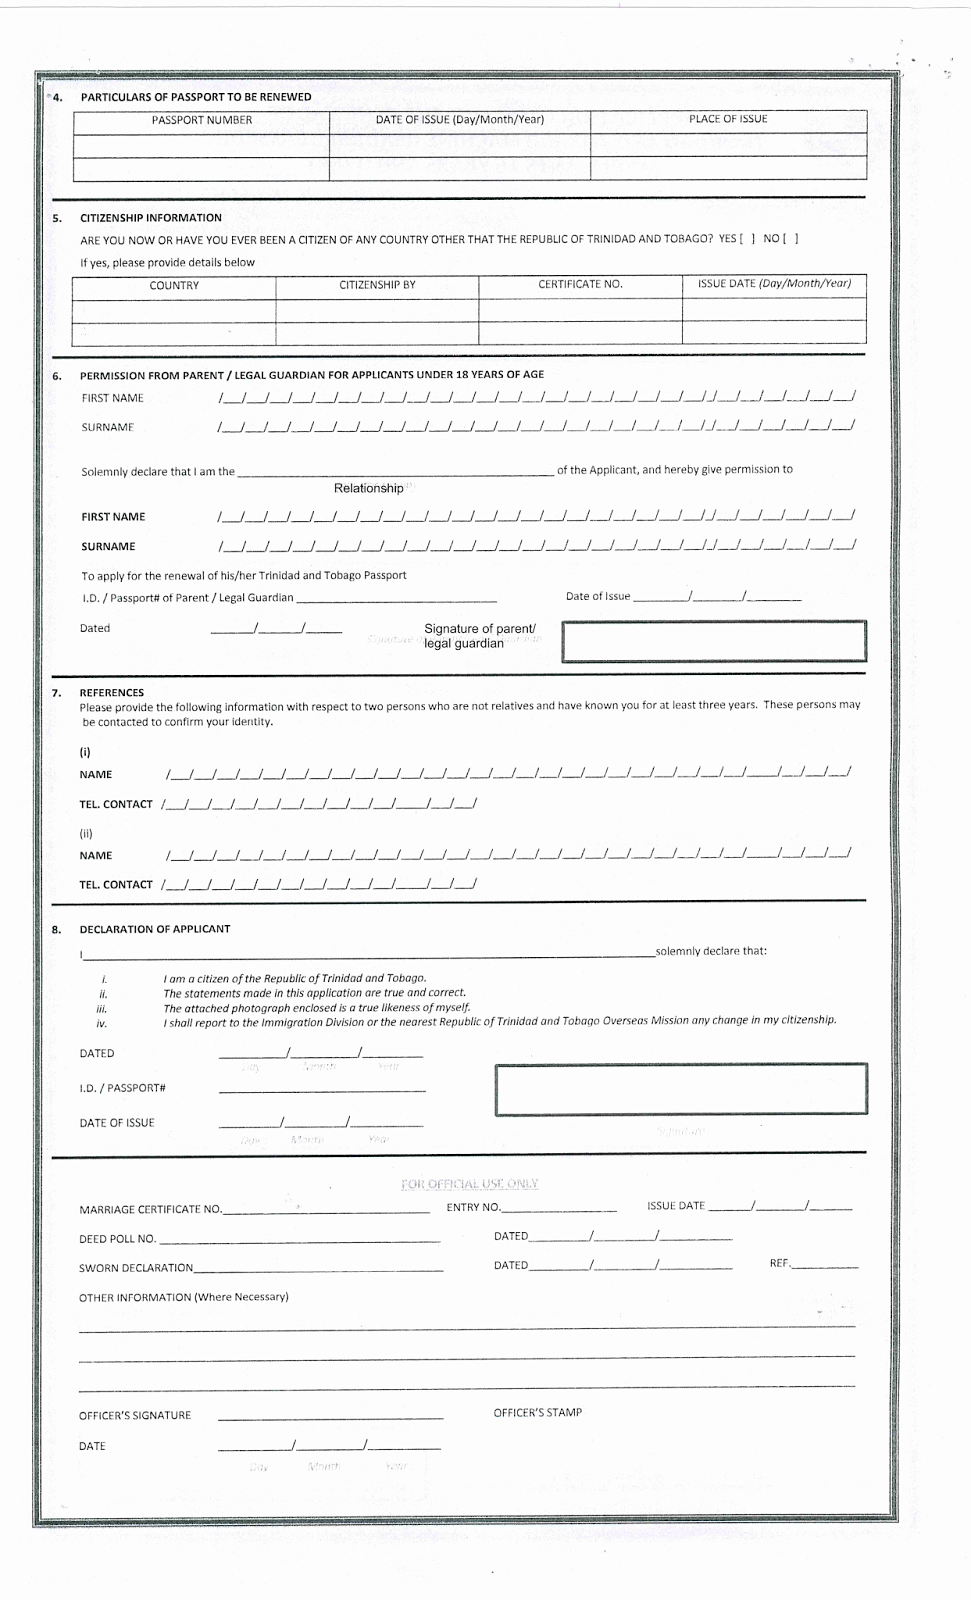 nexus renewal application form canada